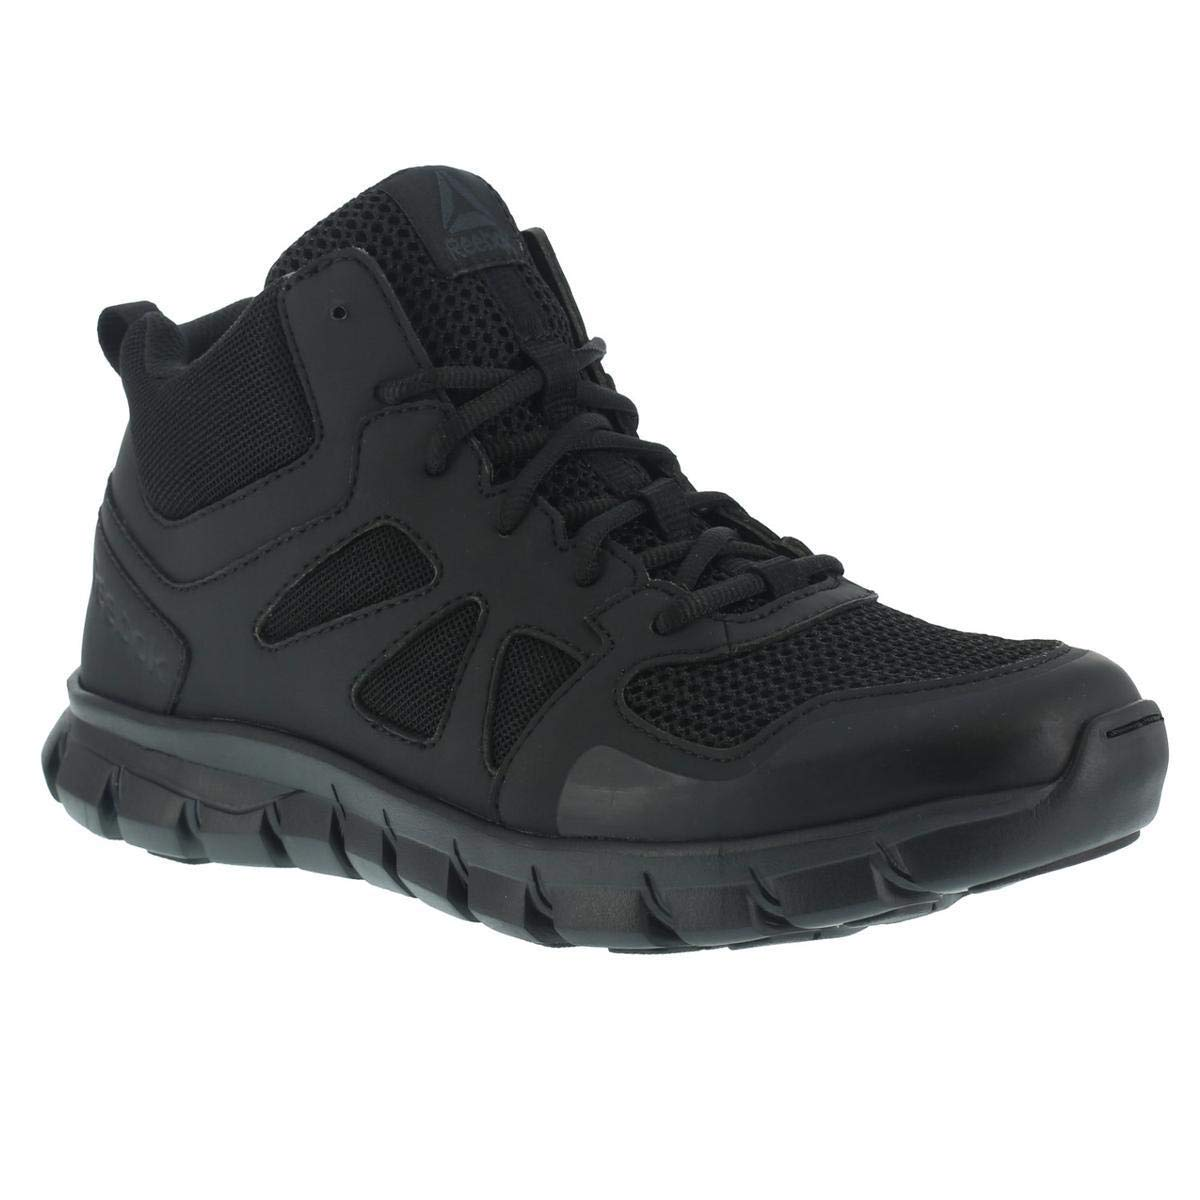 Reebok Women's Sublite Cushion Tactical RB805 Military & Tactical Boot, Black, 7 M US by Reebok